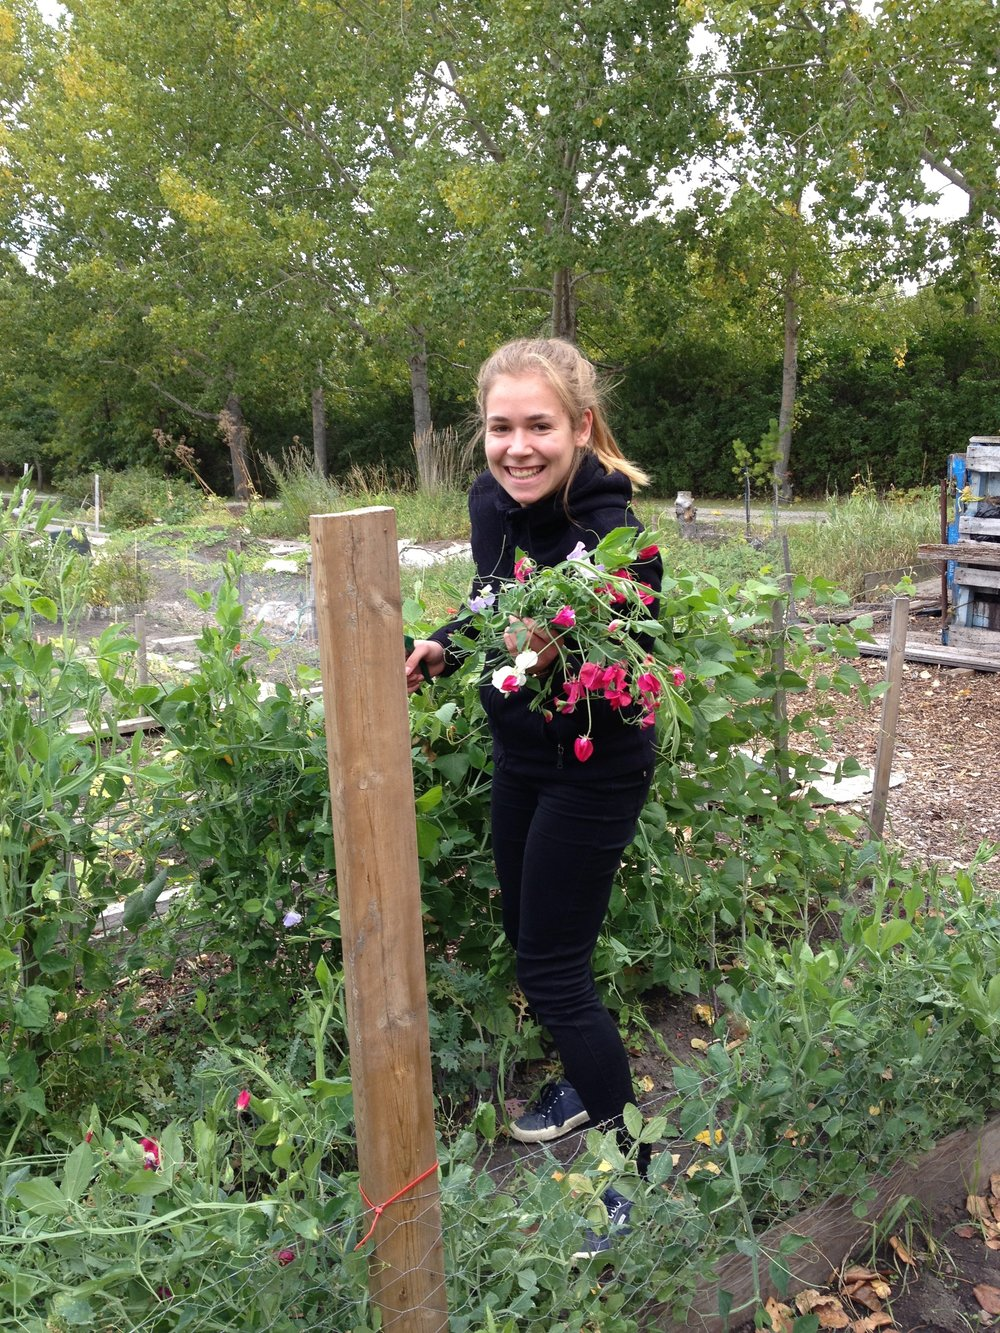 Hanna, our german WWOOFer (willing worker on an organic farm) - we didn't have a farm but we are pretty farm-ish folk,so it all worked out